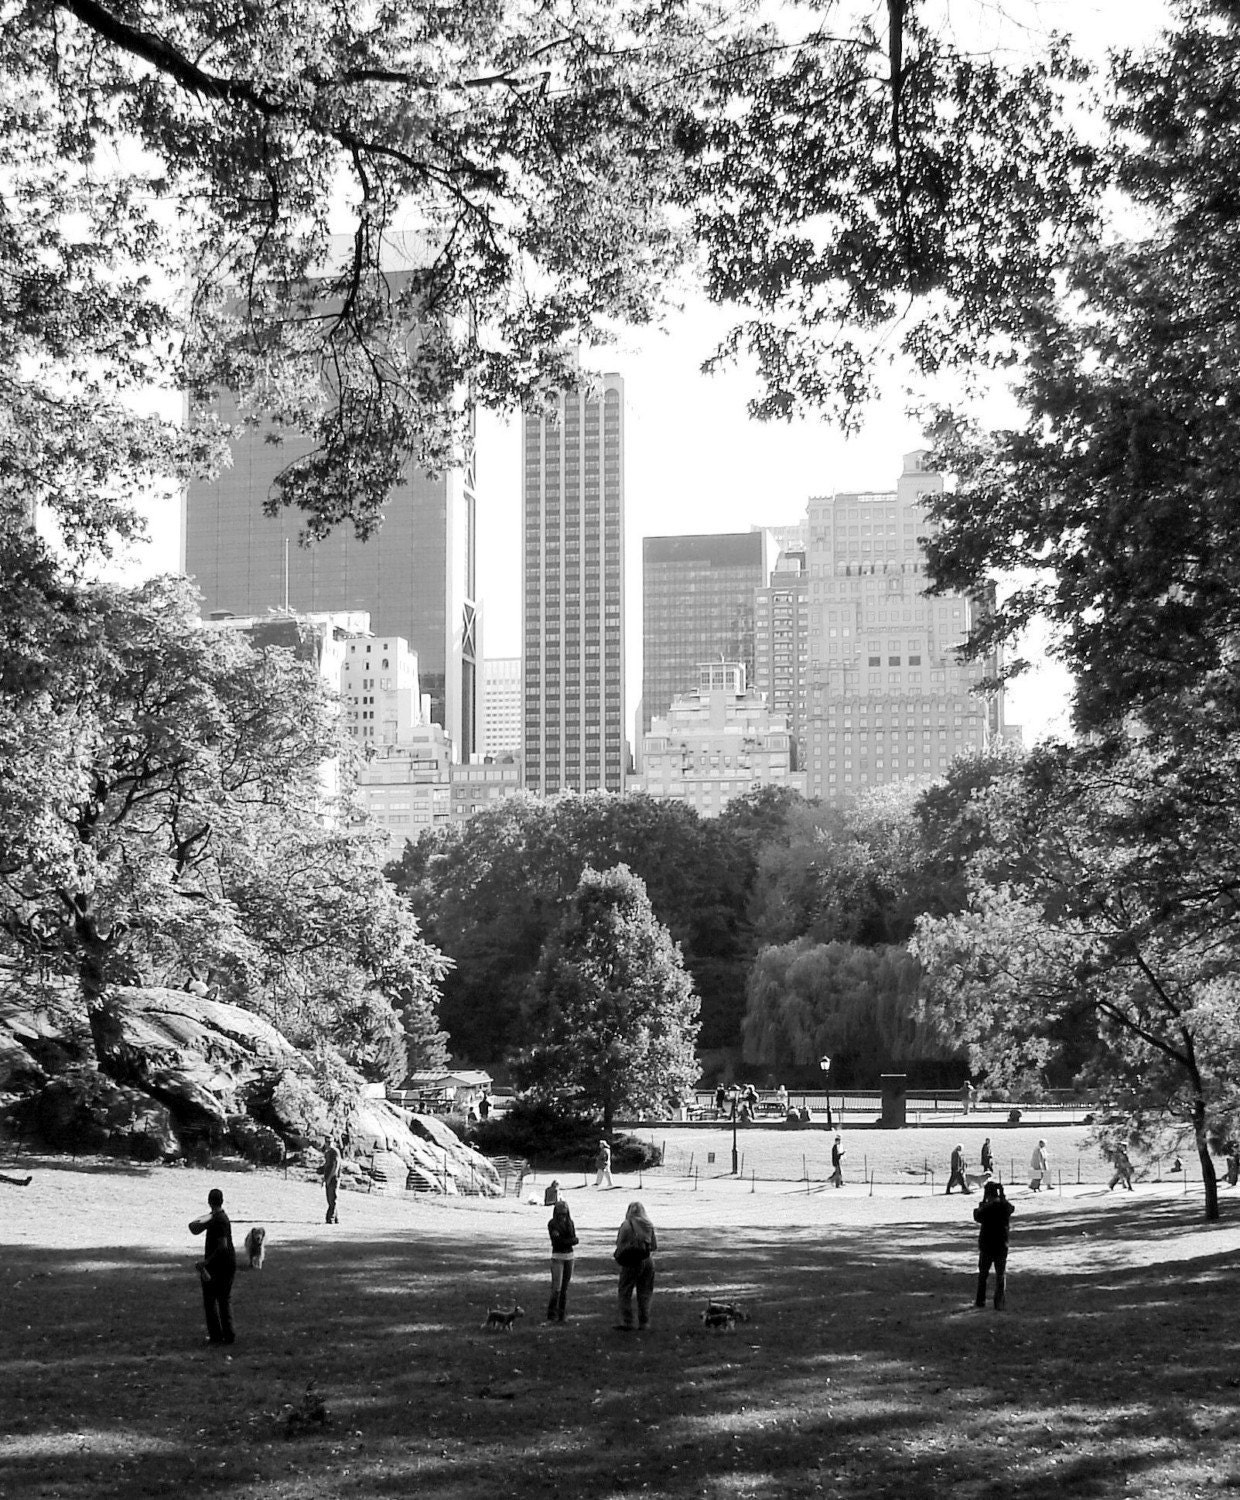 Dog Park NYC - Photography 8x10